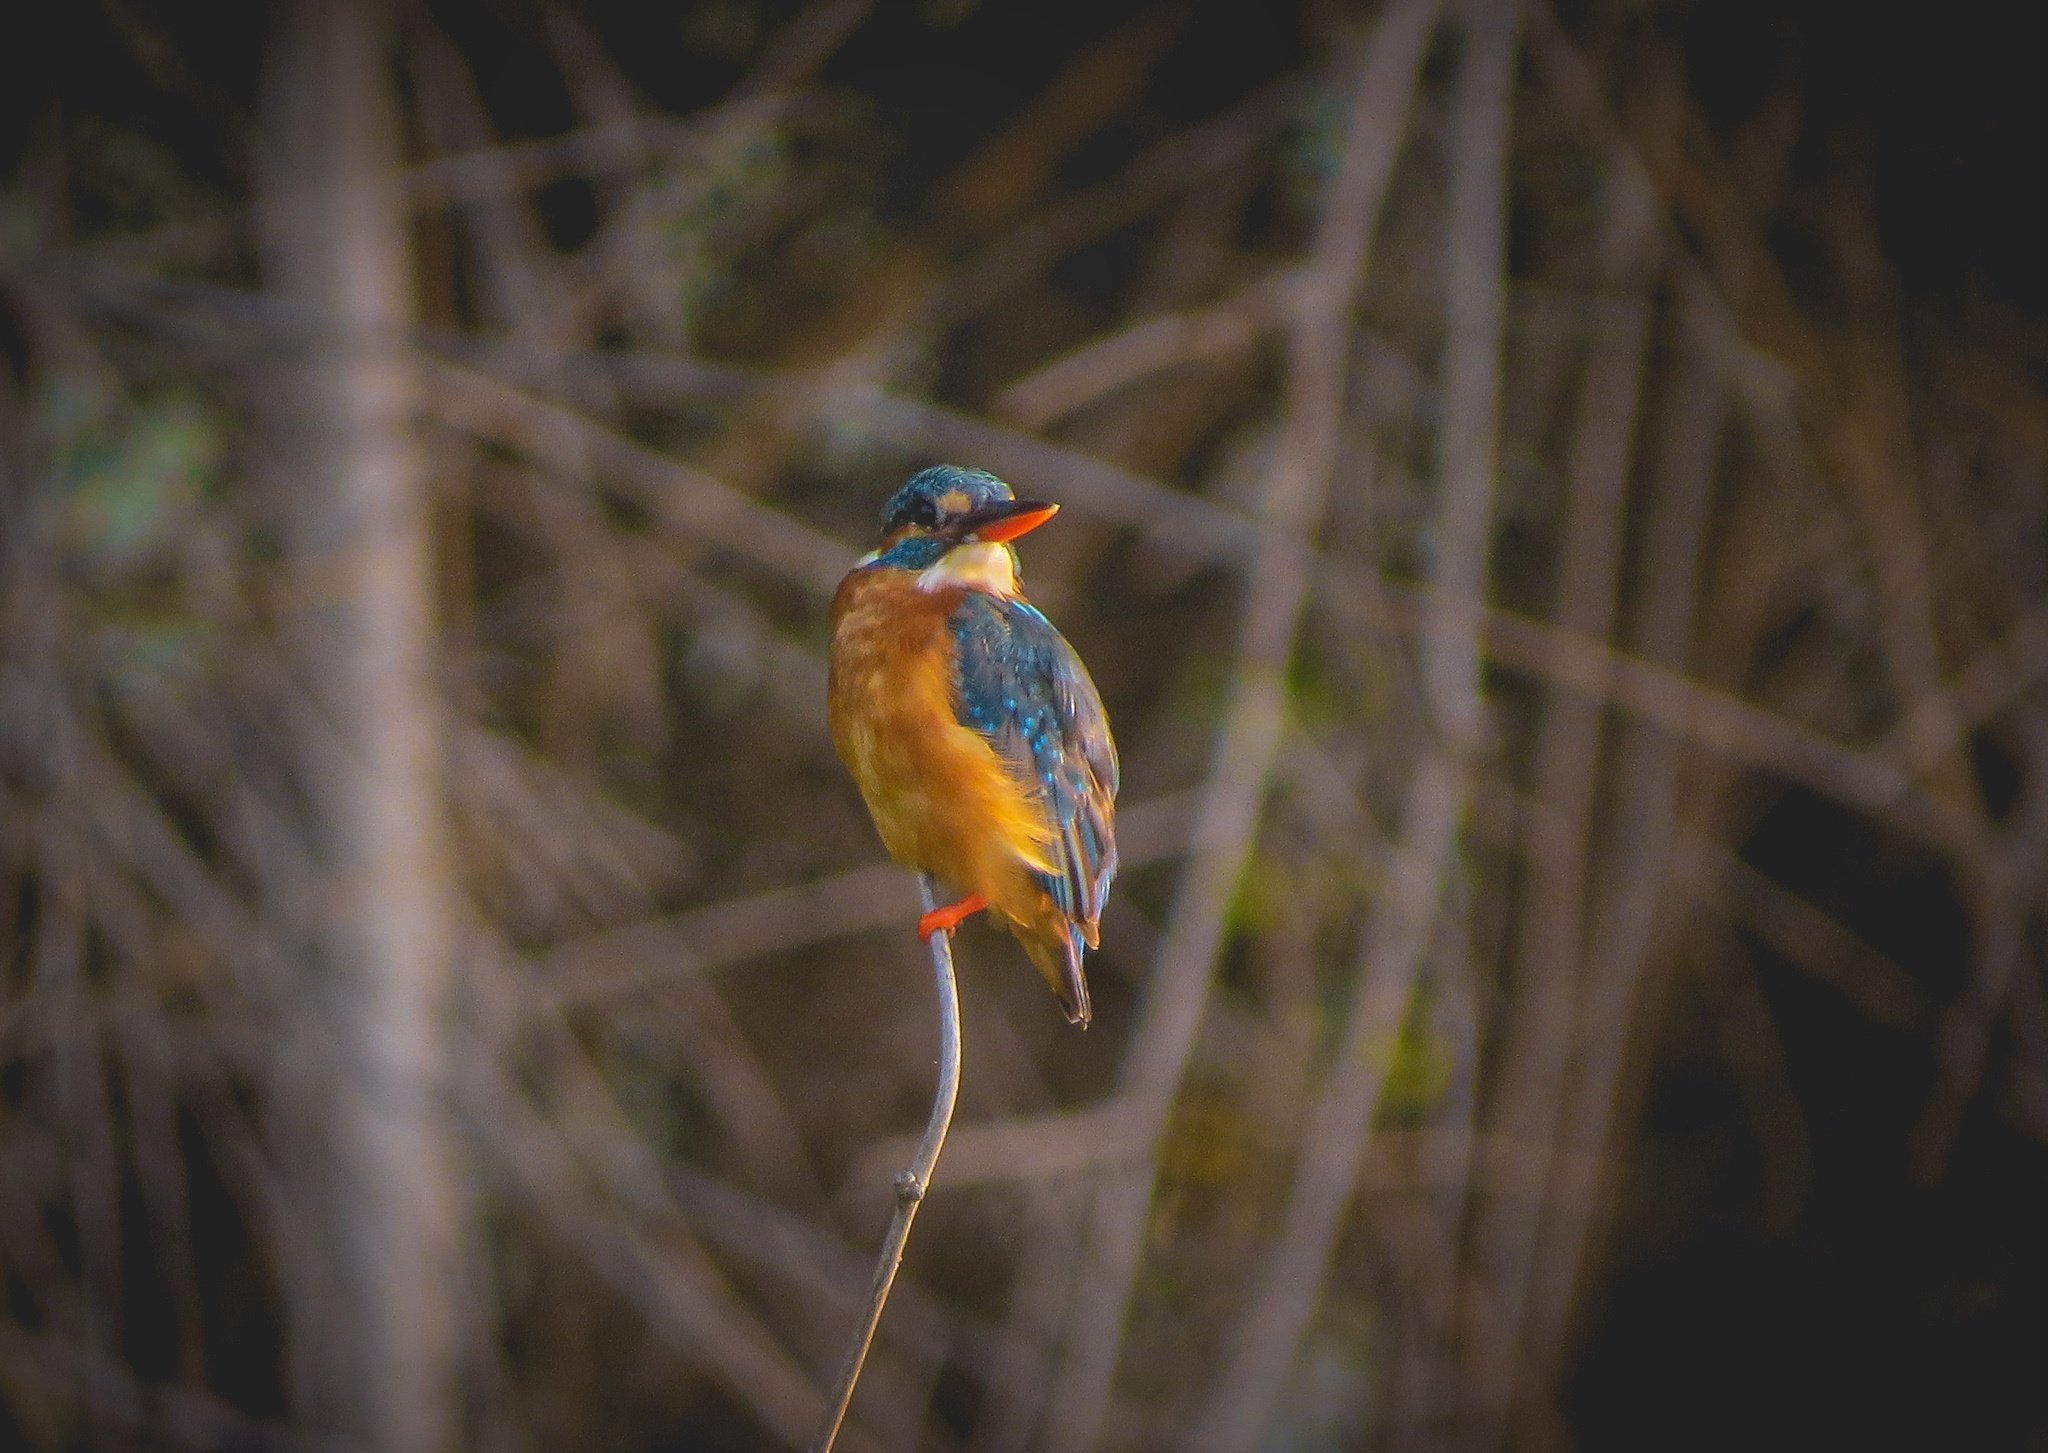 A kingfisher on a twig